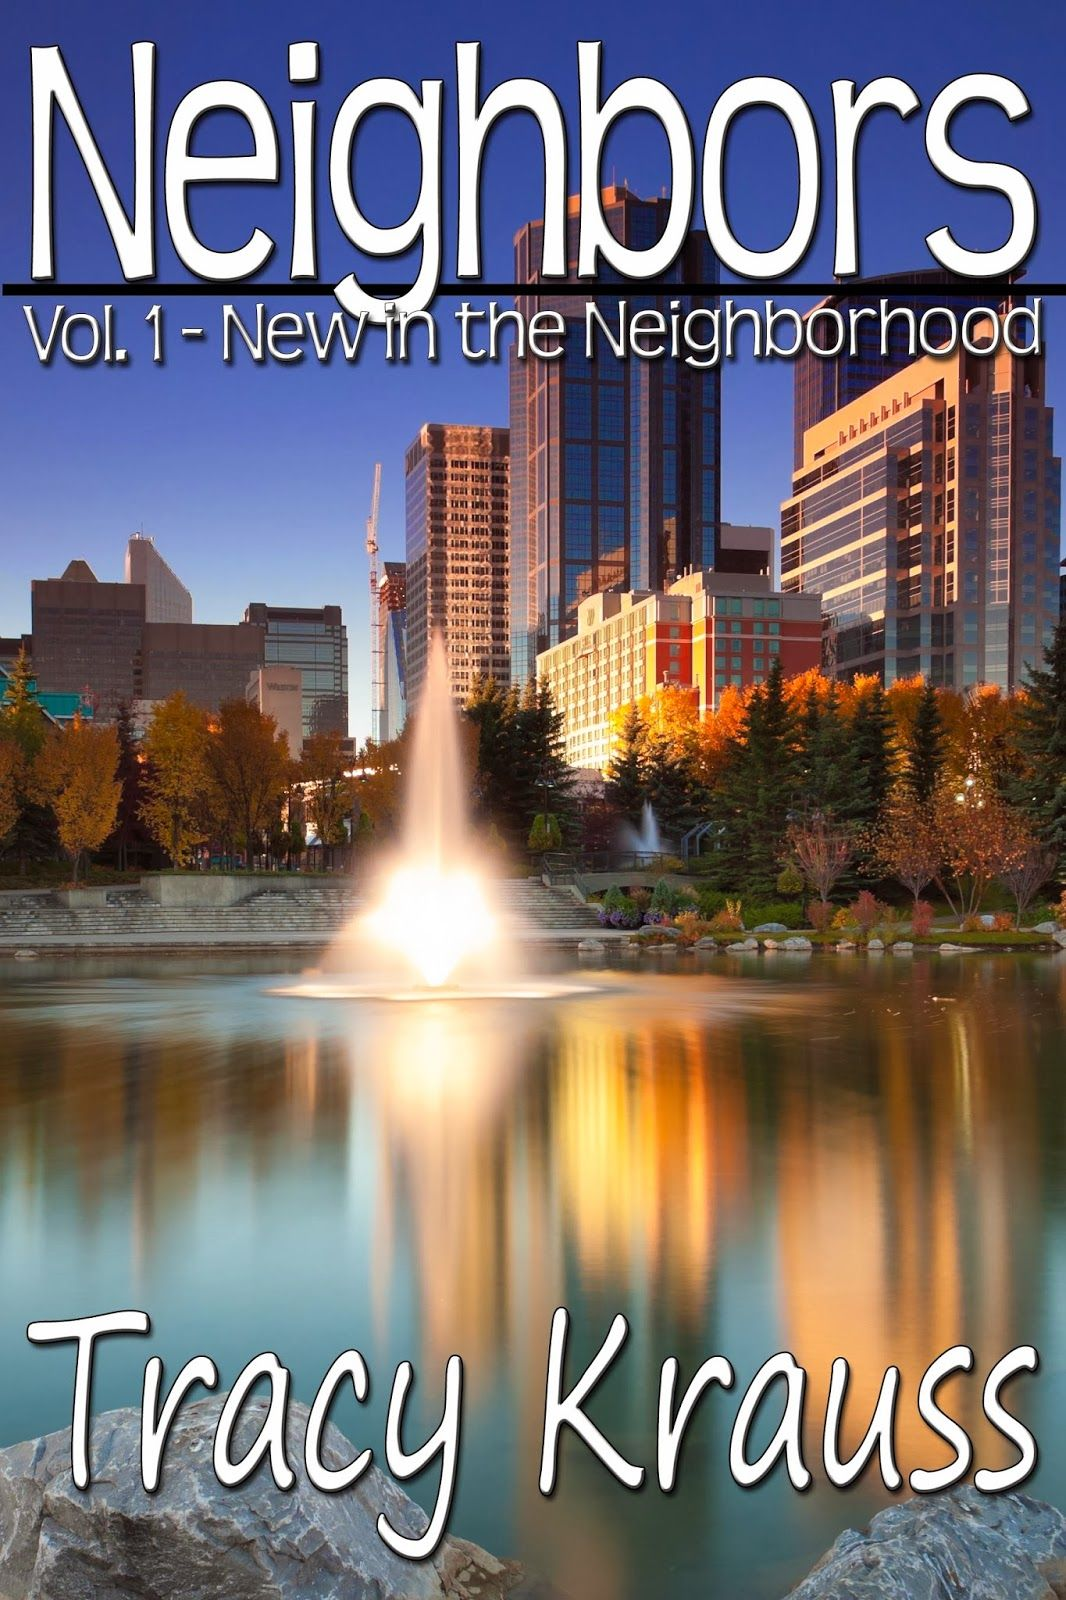 """Tracy Krauss - """"Expression Express"""": Another new book release! NEIGHBORS - Vol 1 New In the Neighborhood"""